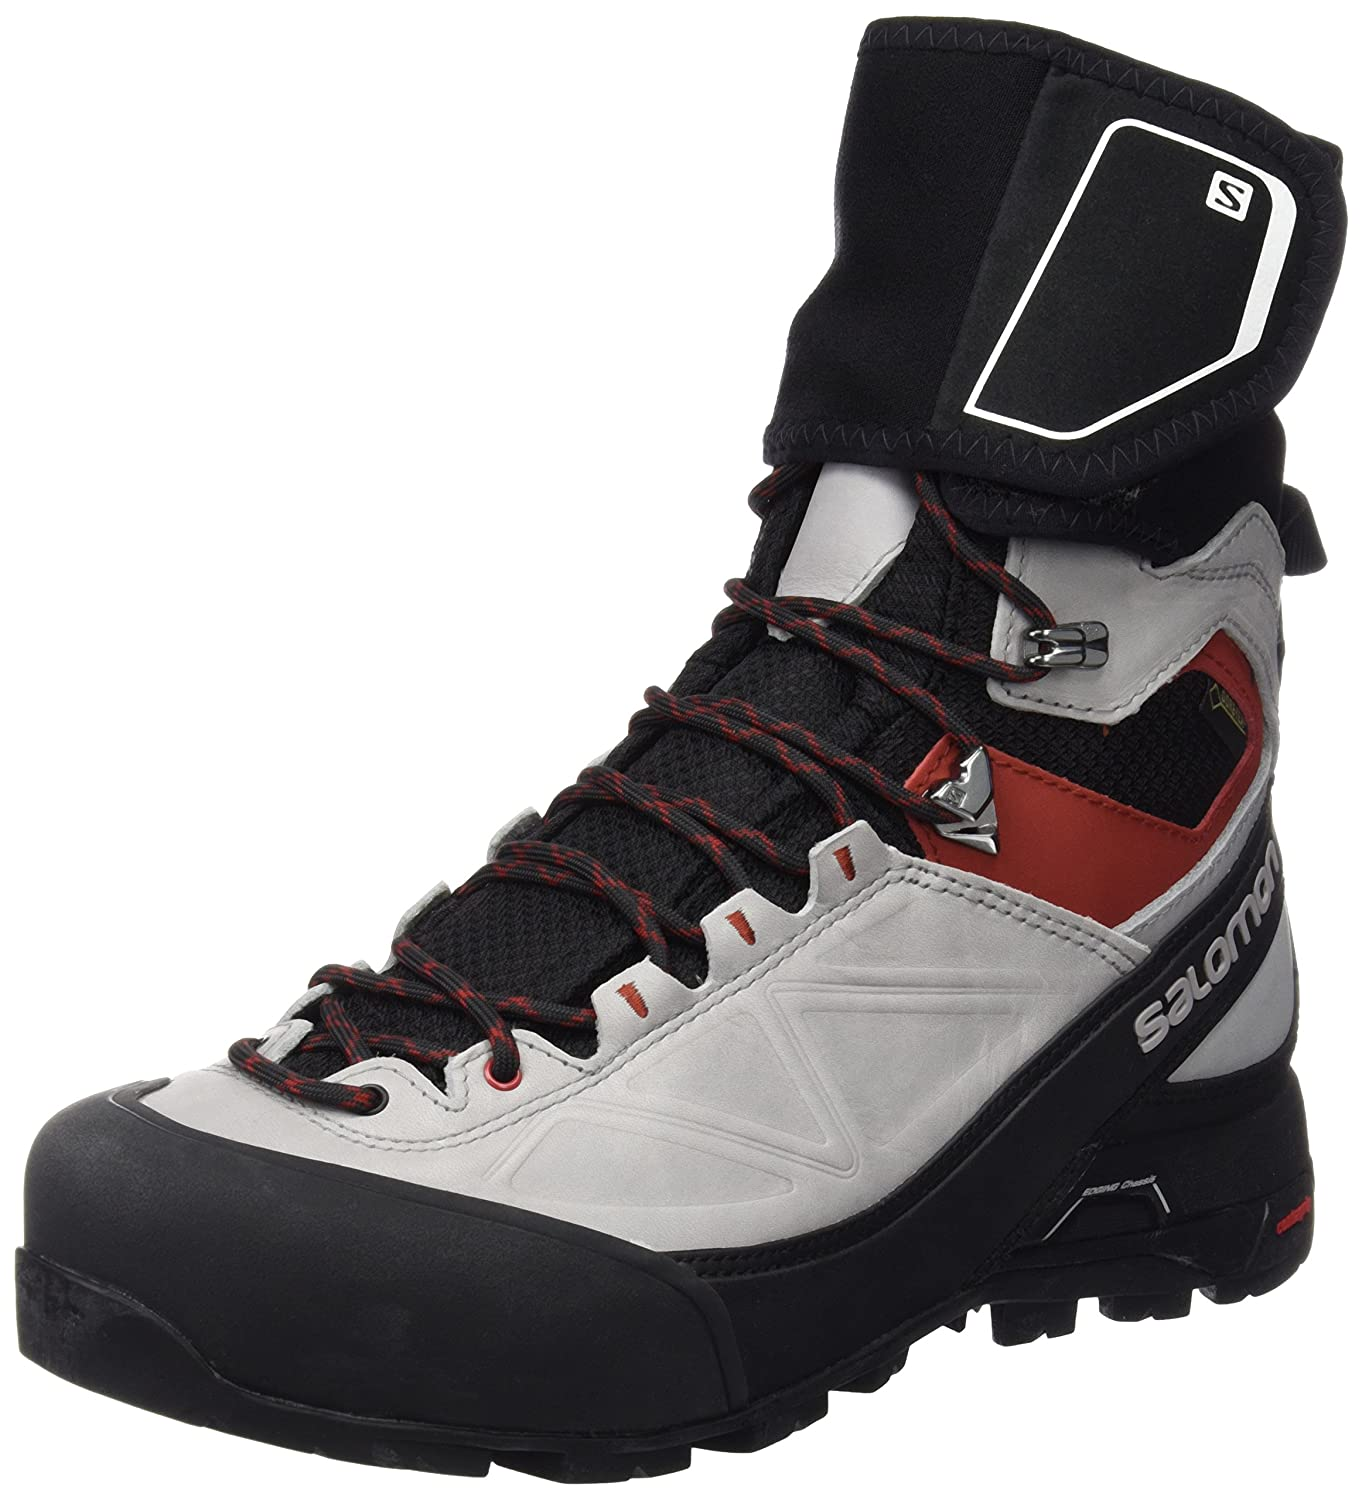 Salomon Men's X Alp Pro GTX Waterproof Hiking Boot B00KWKR4GG 8 D(M) US|Black / Light Onix / Flea